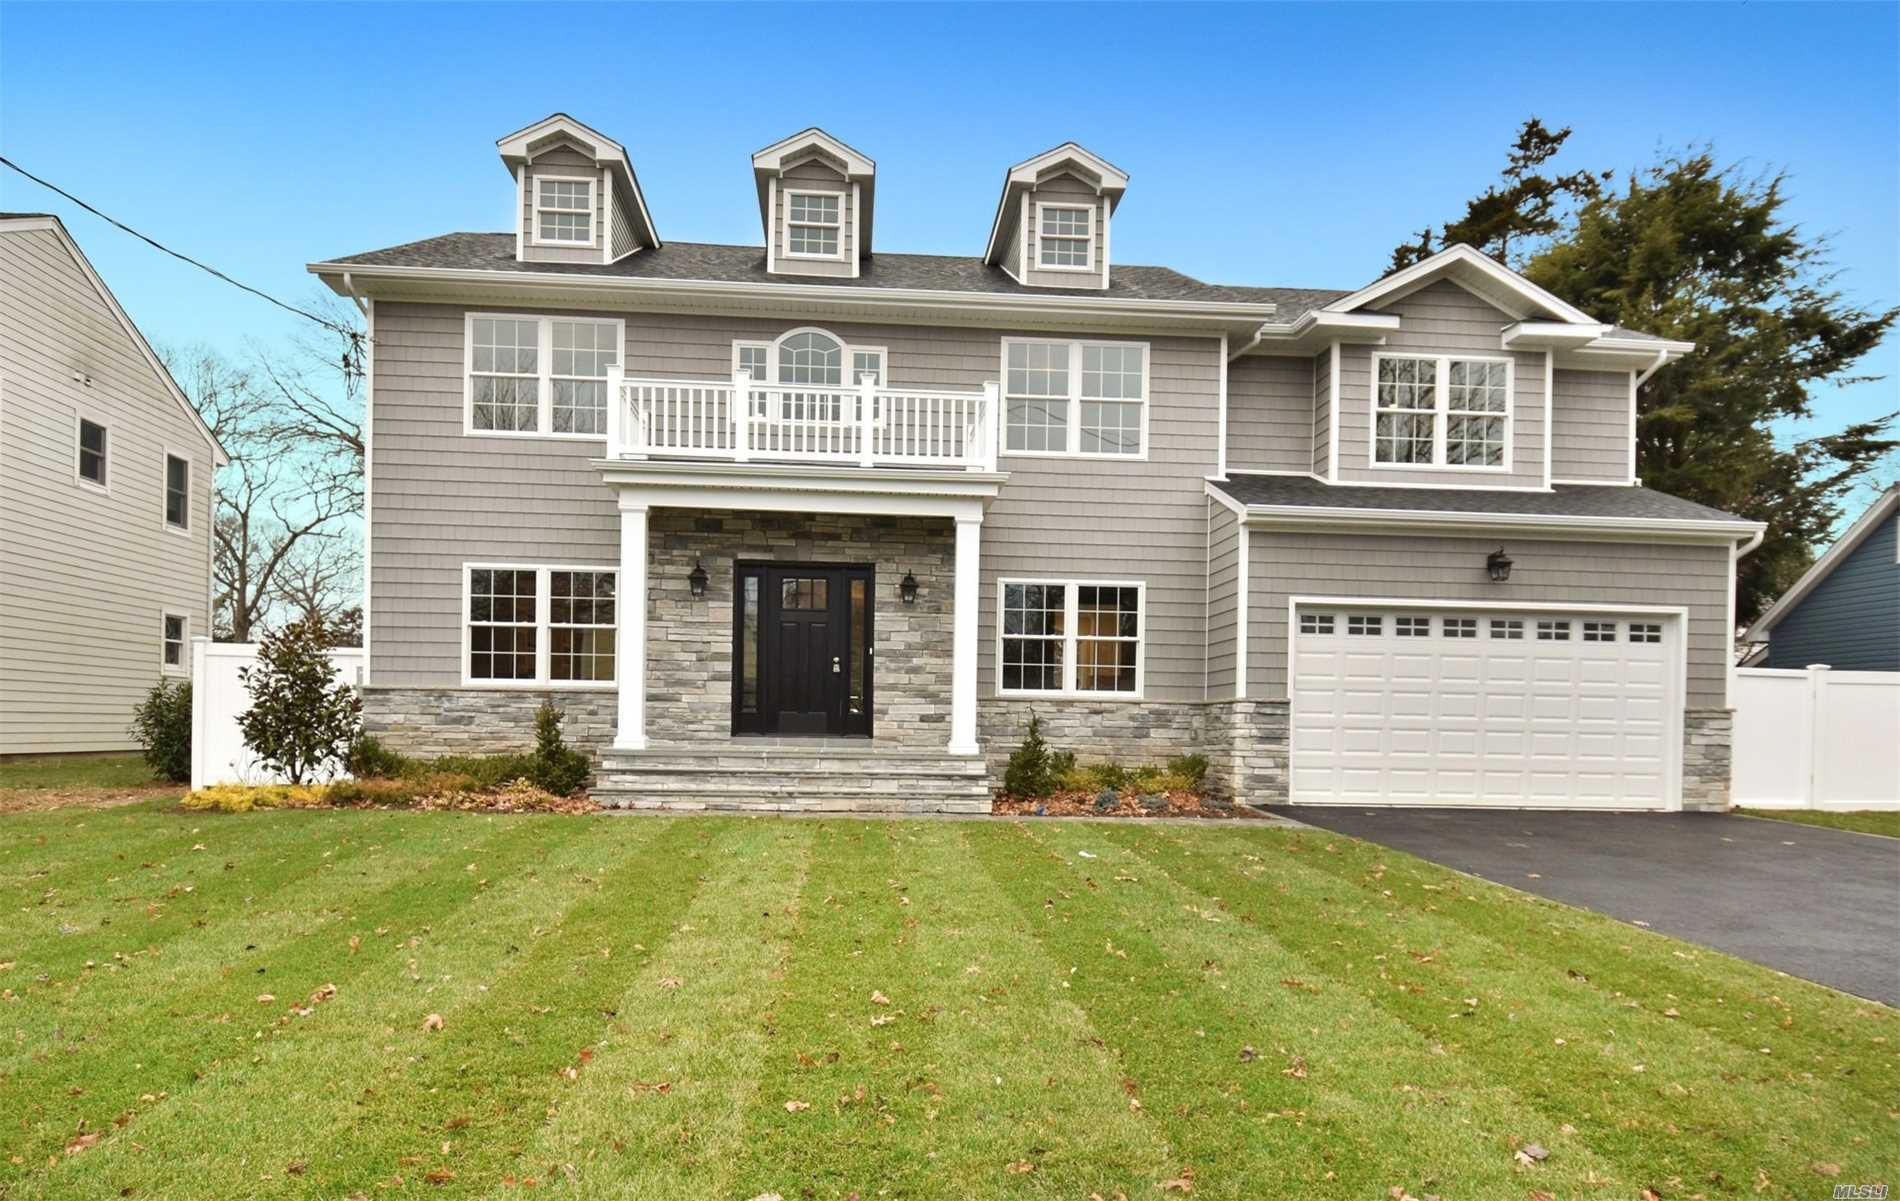 Spectacular Park Like Property, North Syosset!! Stunning Sundrenched, 6 Bedroom, 4.5 Bath, Center Hall Colonial, North Syosset, Hw Floors, Gorgeous Gourmet Eik, Elaborate Trim Package, Stones Throw To Town, Rr, Village Elementary. Interior Pictures Are For Workmanship Purposes Only..Not Exact To This House.